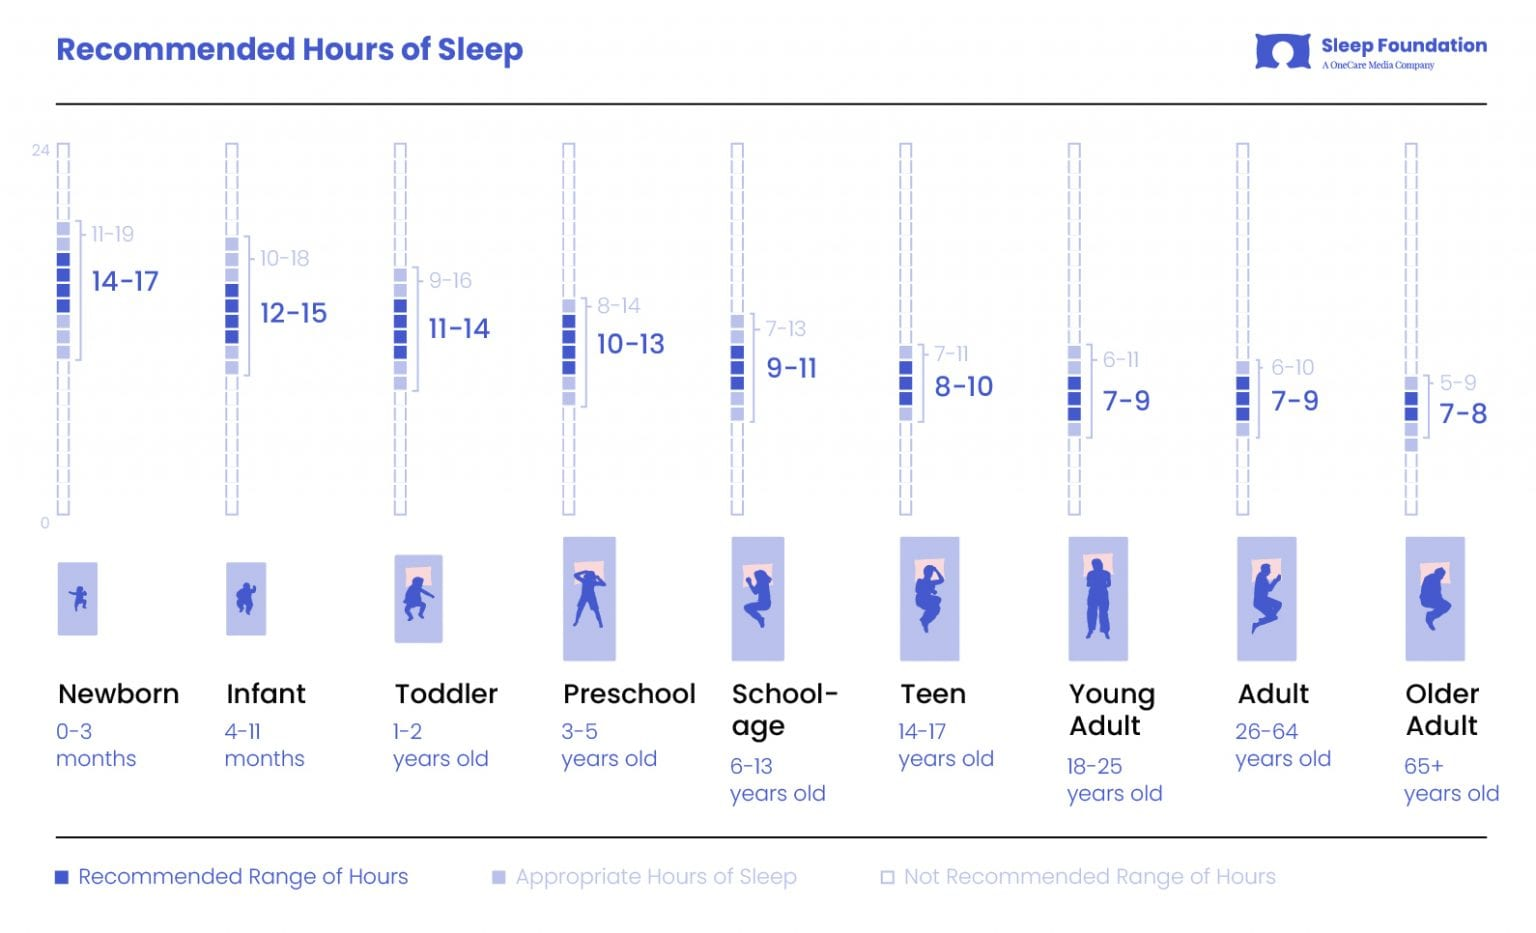 Recommended Hours of Sleep